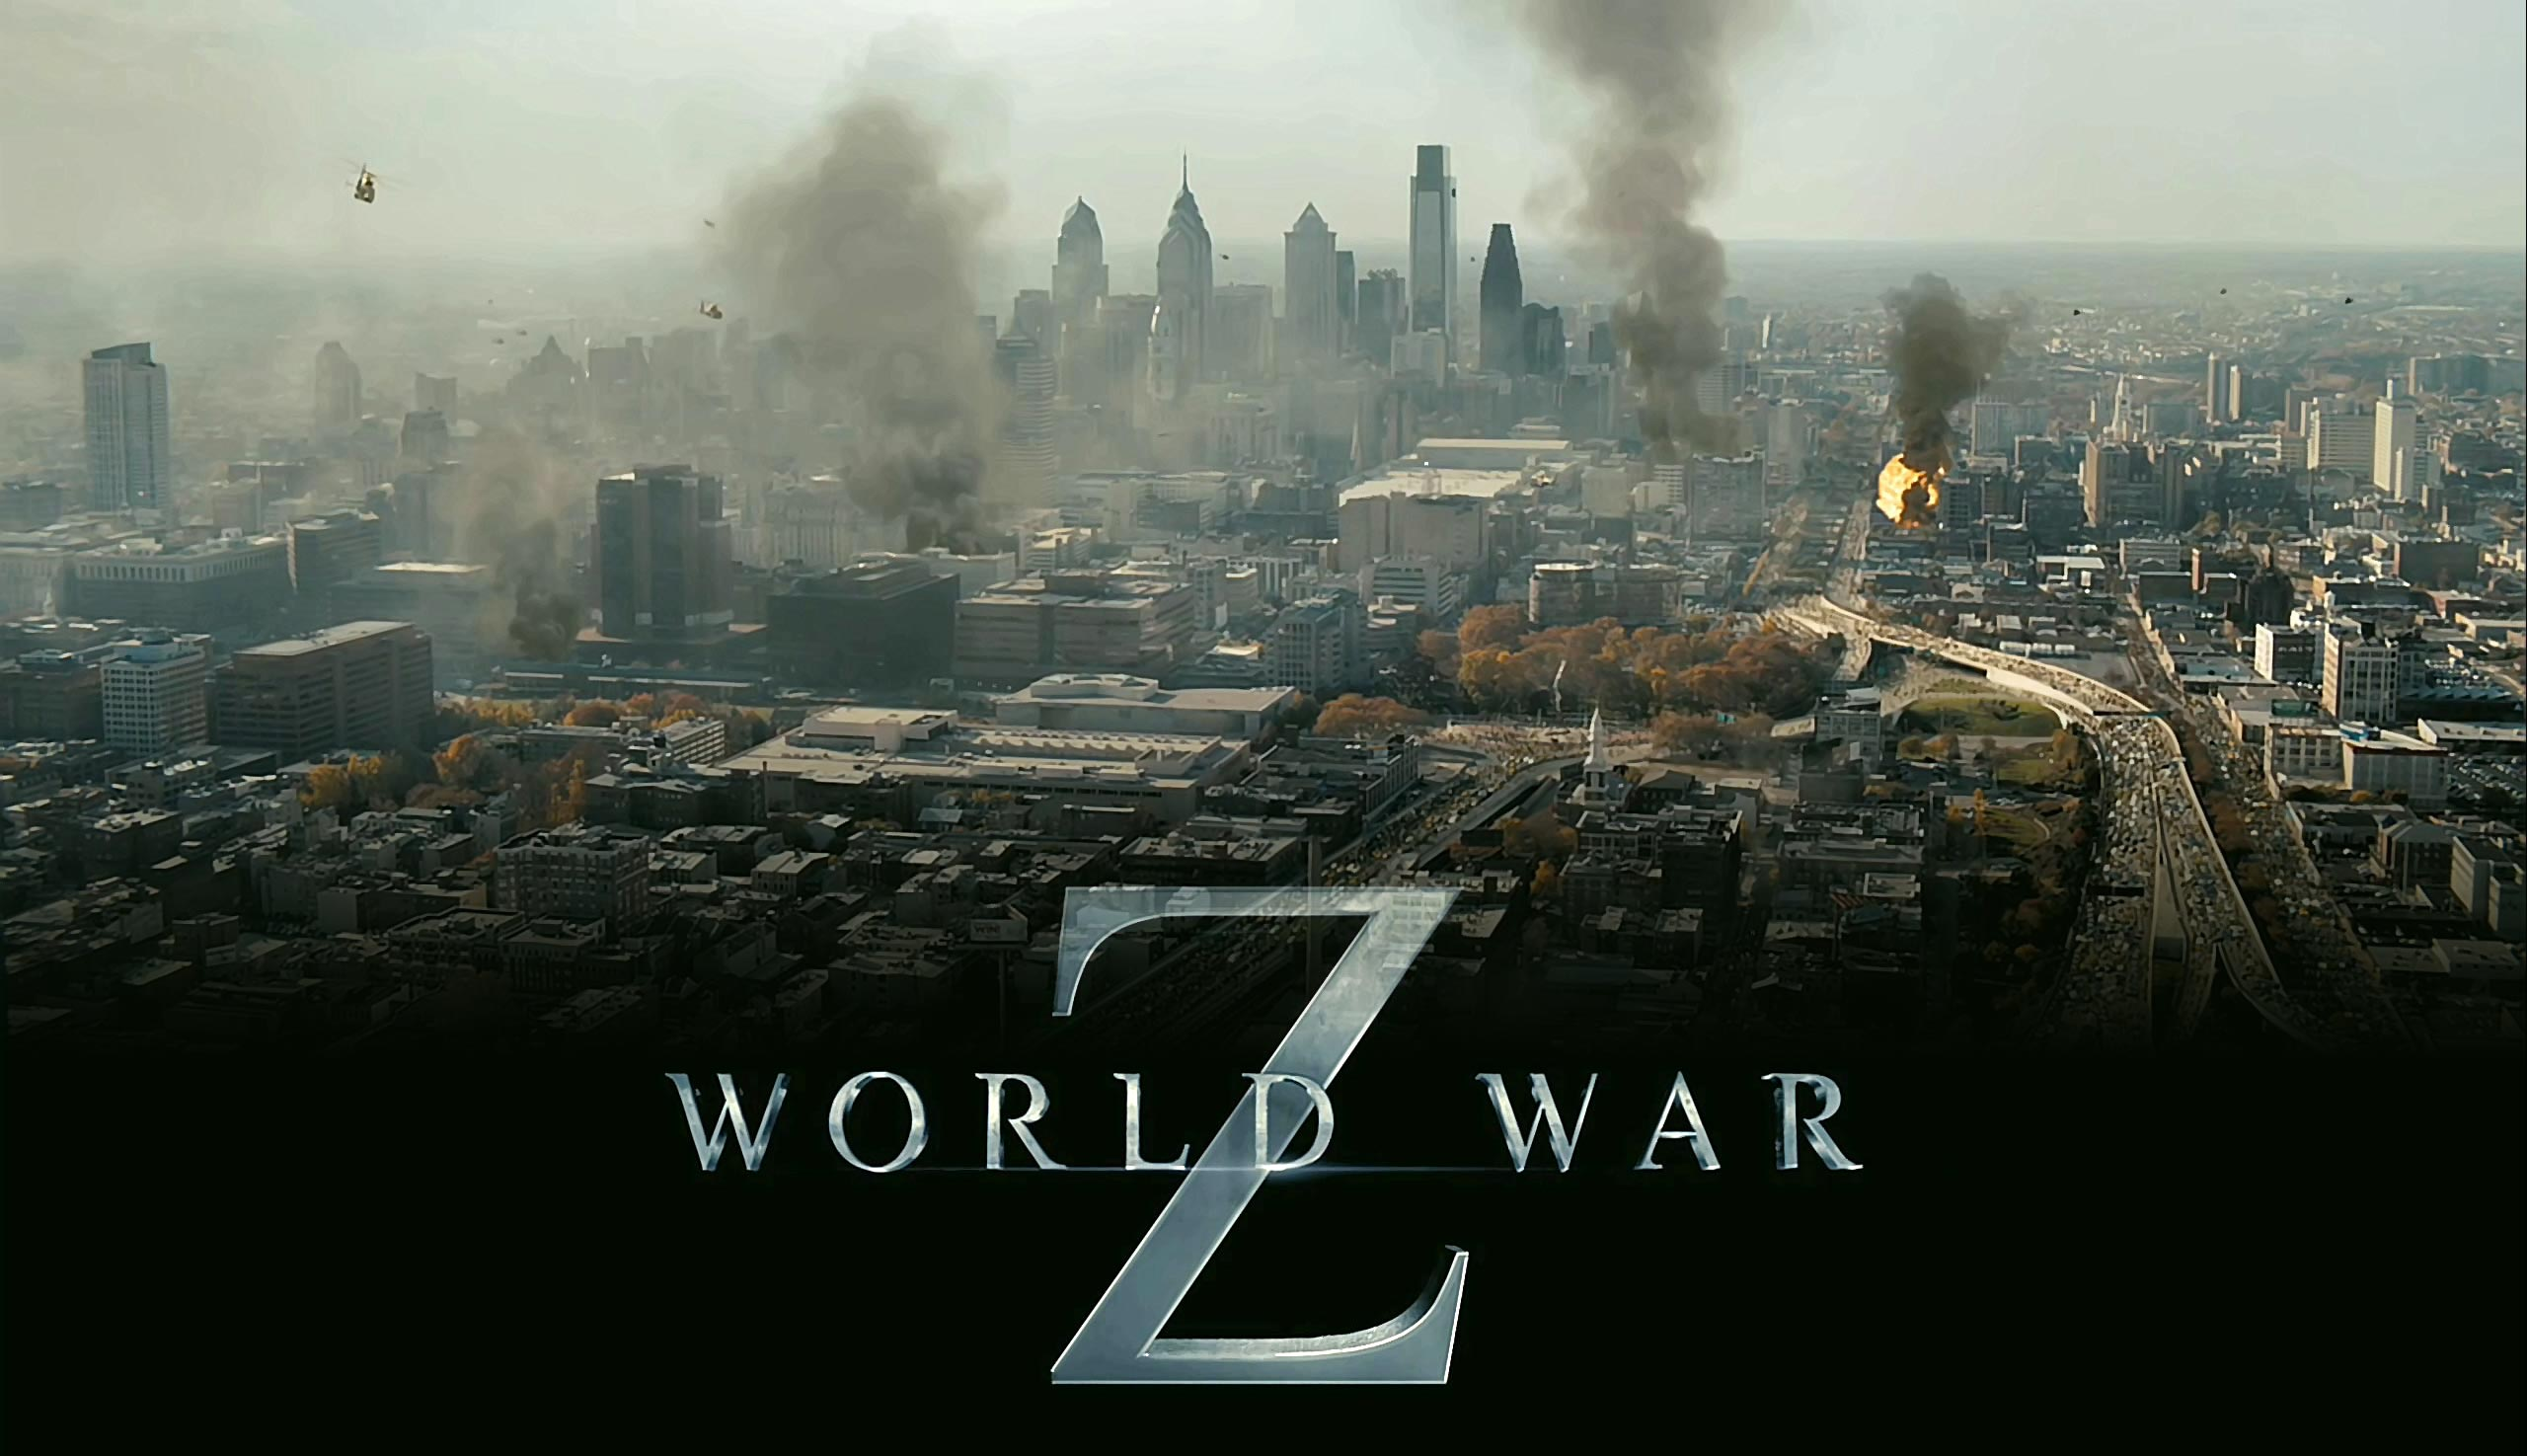 world-war-z-bb.jpg